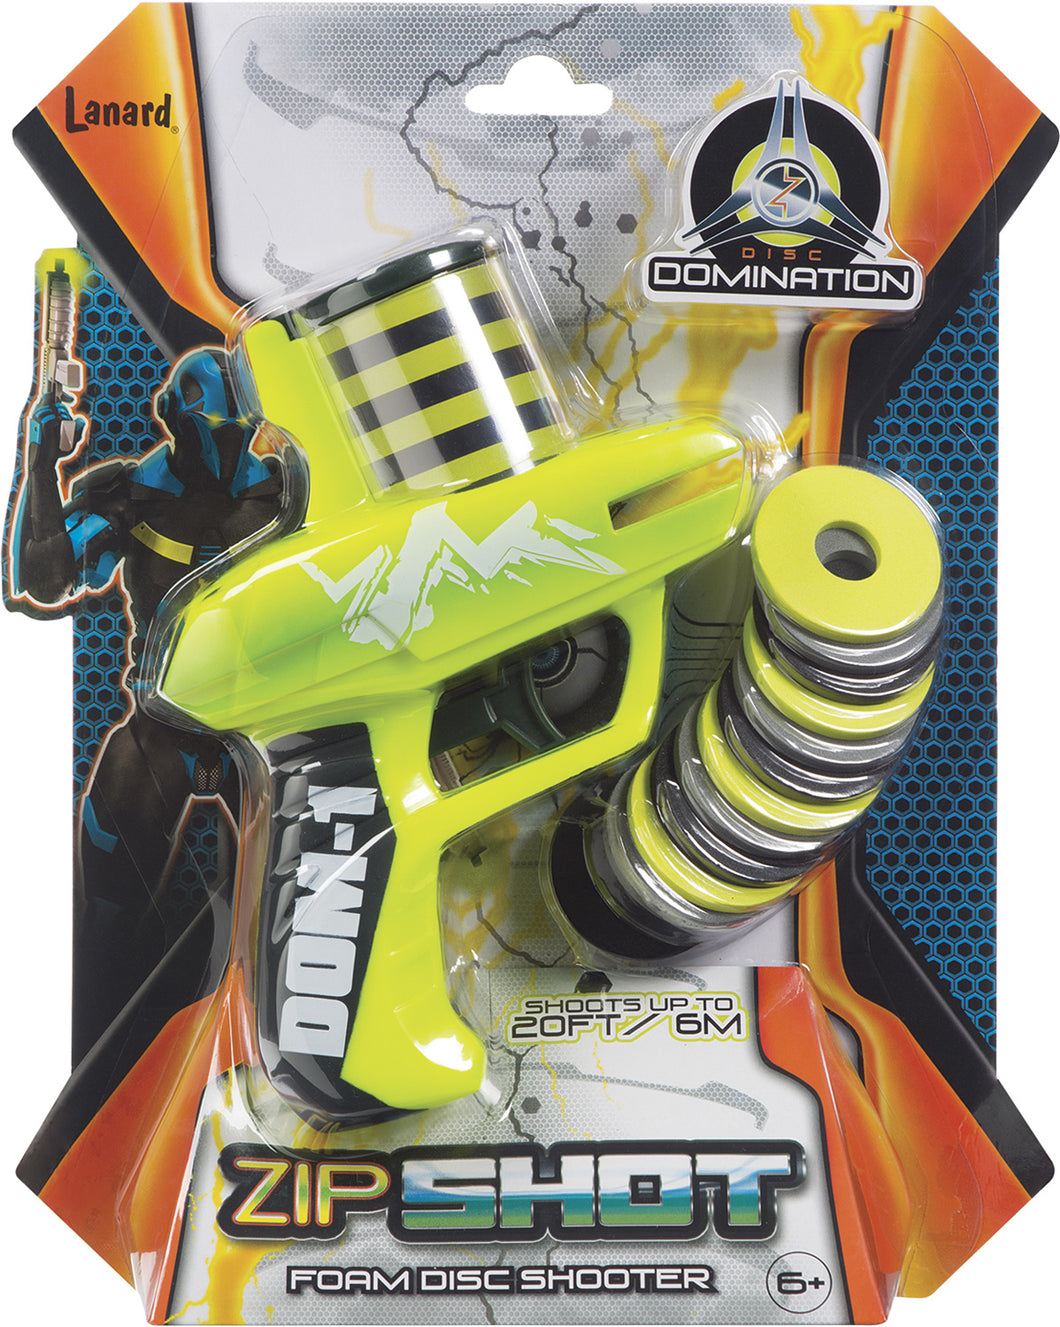 Zip Shot Foam Disc Shooter